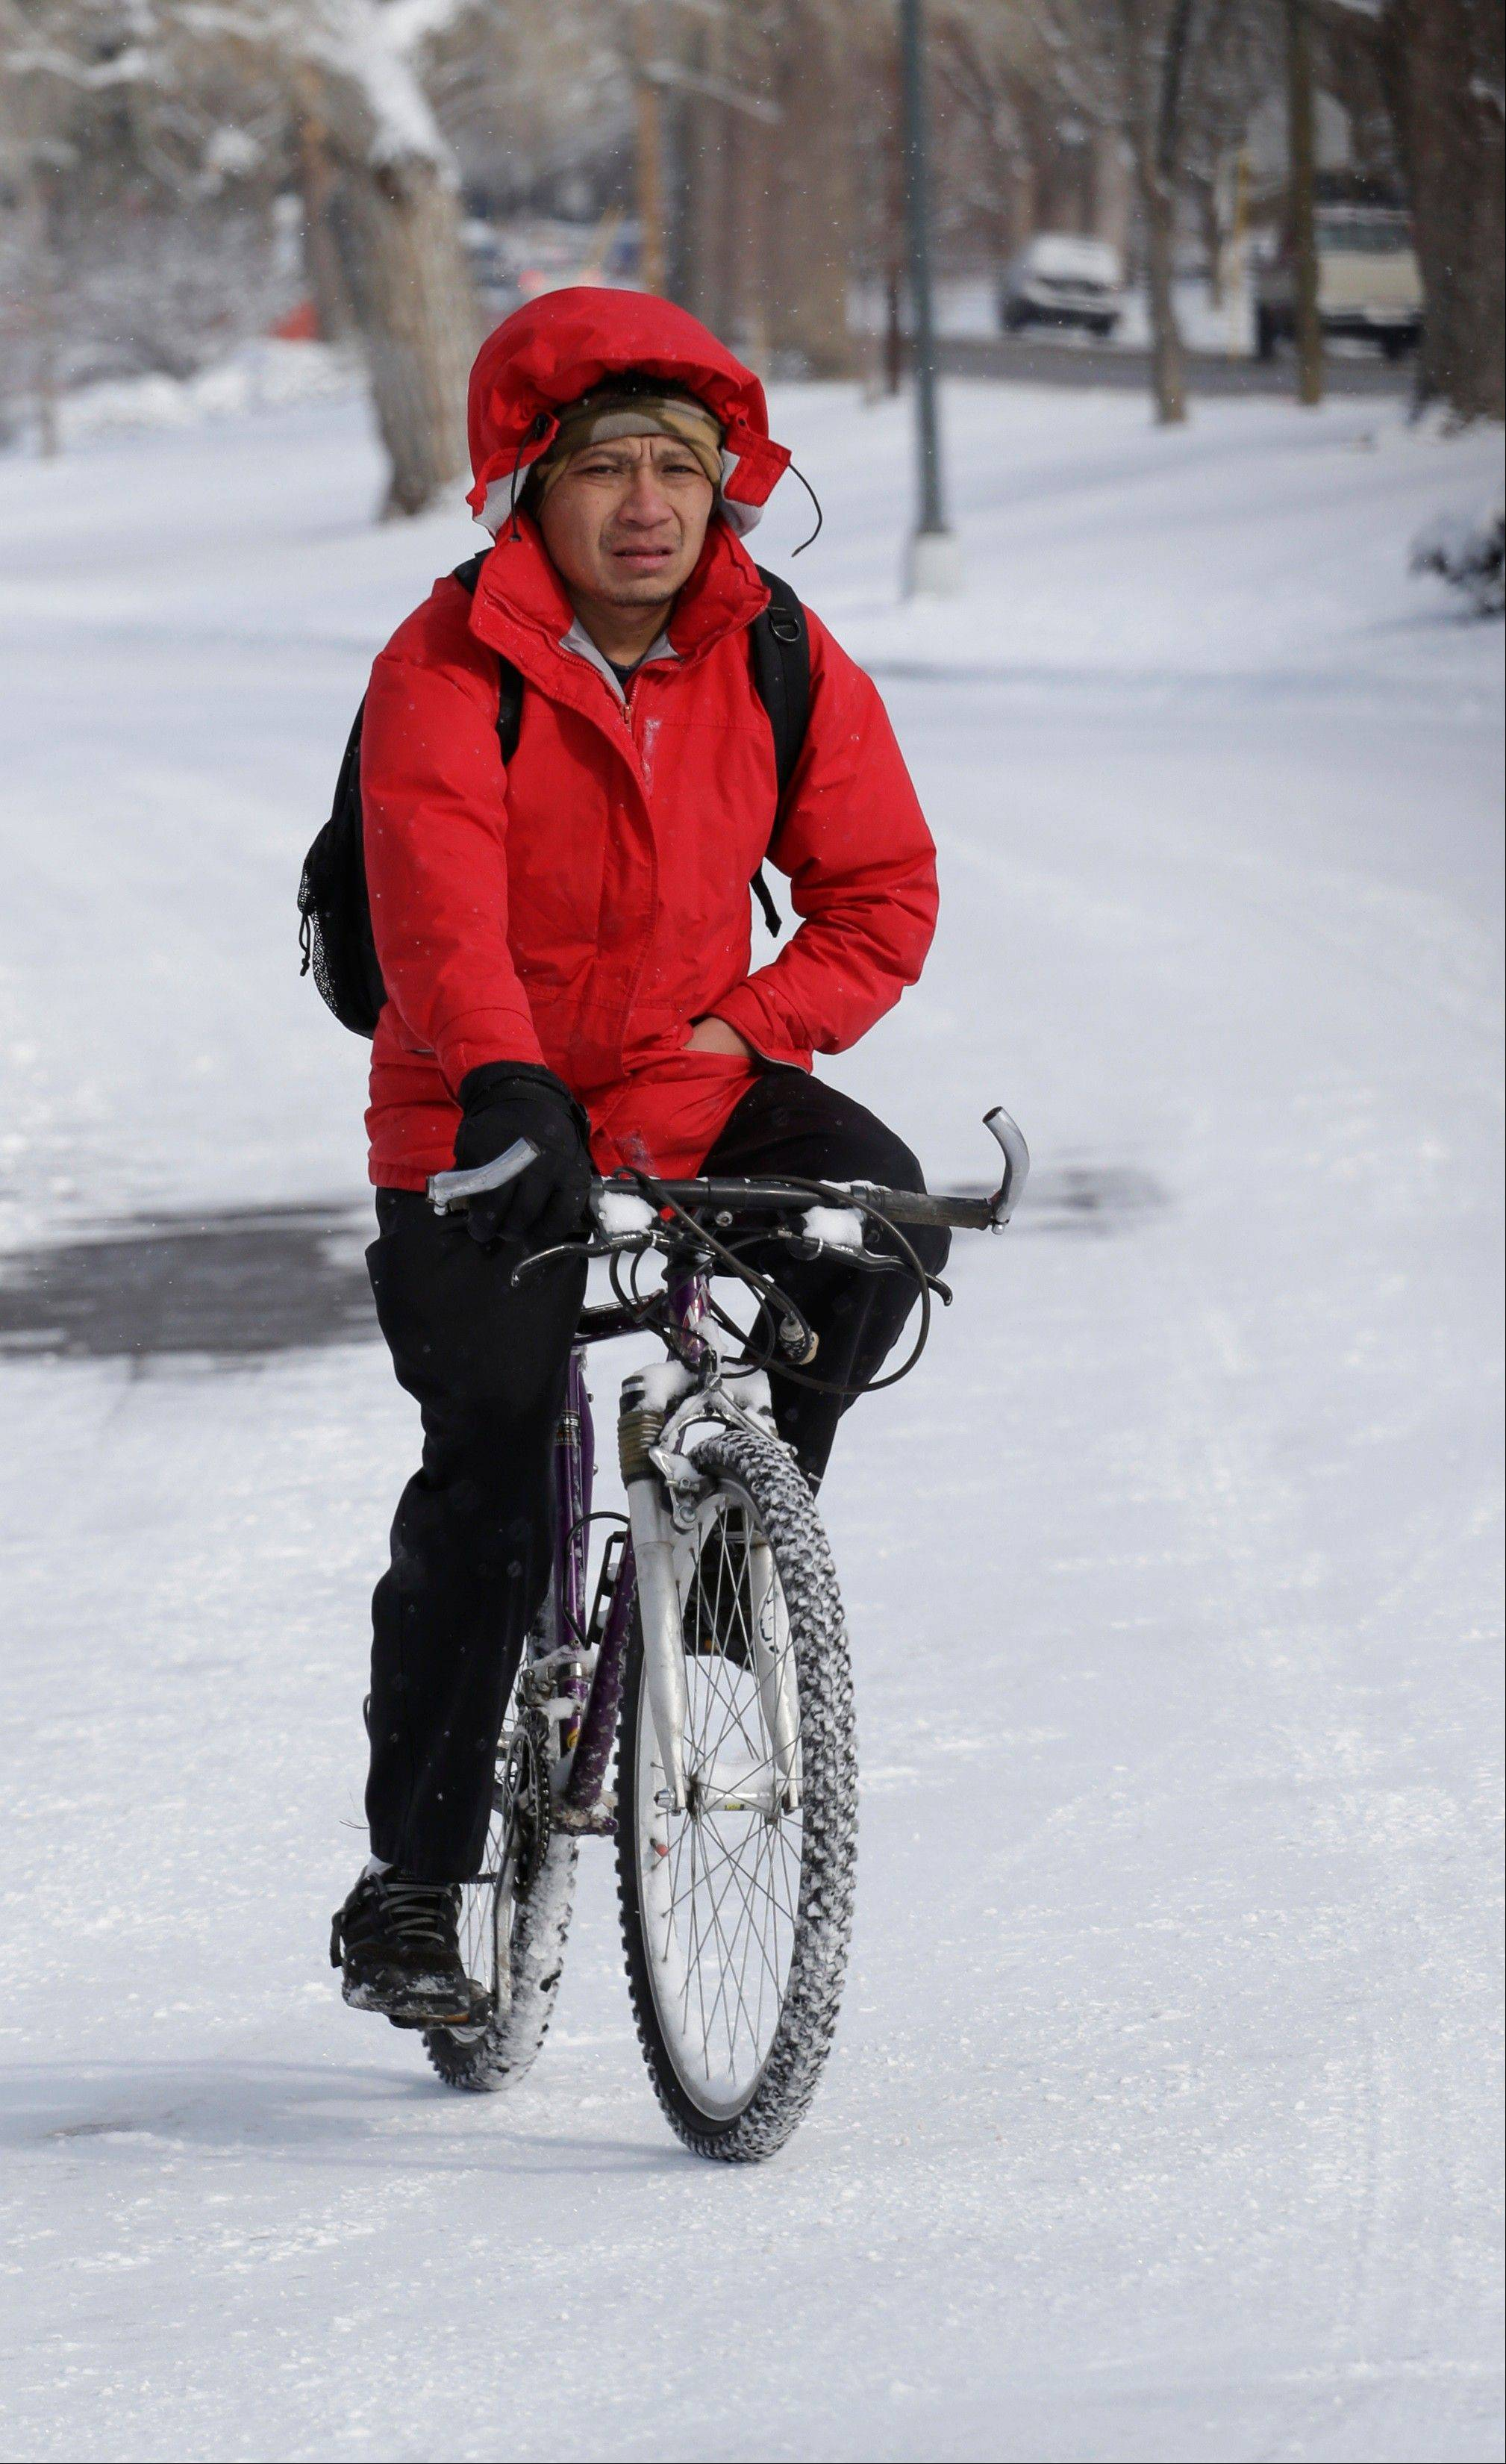 Hector Valdez rides his bike through the snow in Denver on Thursday, Feb. 21, 2013. A fast moving winter storm passed through Colorado Wednesday night and Thursday morning dropping as much as a foot of snow in areas of the state.